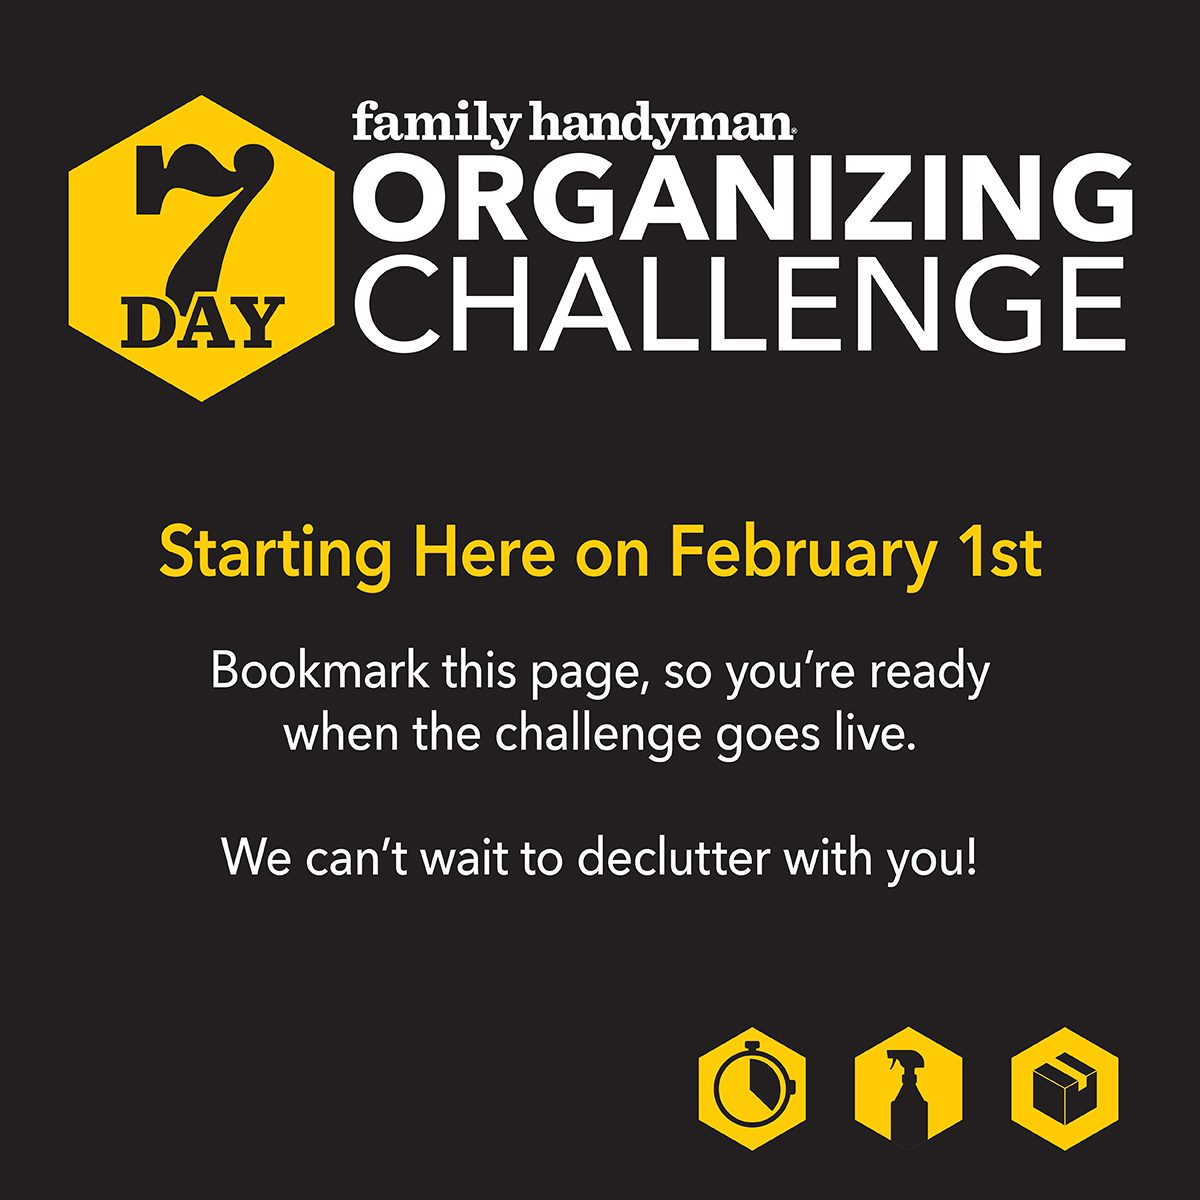 Organizing challenge announcement graphic